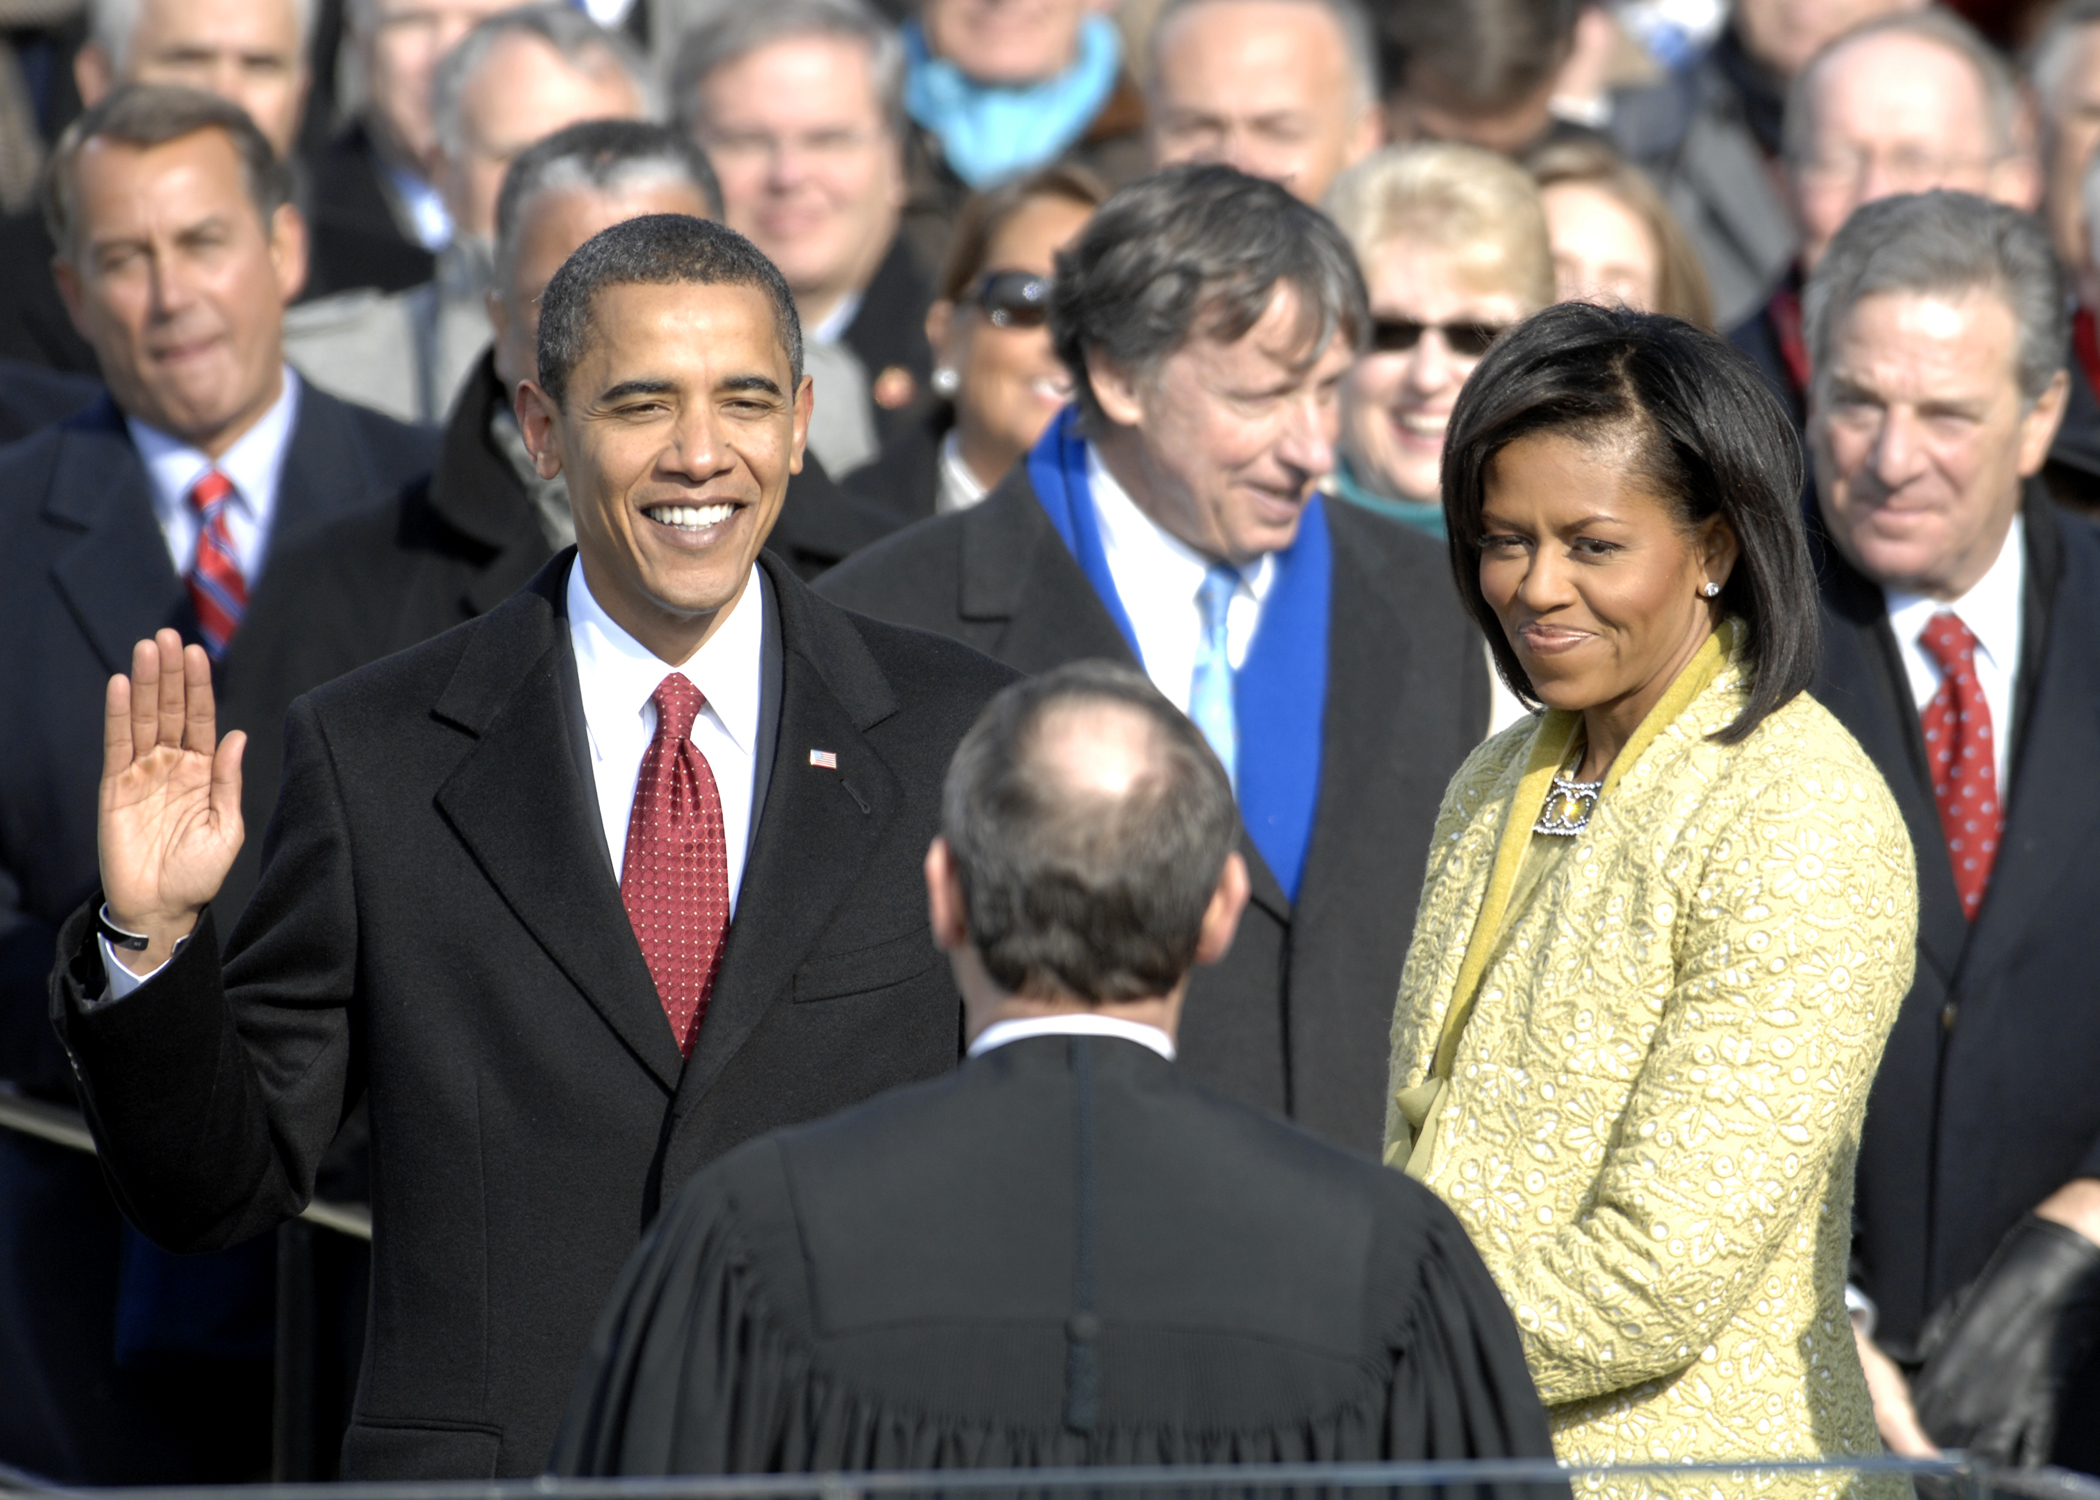 With his family by his side, Barack Obama is sworn in as the 44th president of the United States by Chief Justice of the United States John G. Roberts, Jr. in Washington, D.C., Jan. 20, 2009. More than 5,000 men and women in uniform are providing military ceremonial support to the presidential inauguration, a tradition dating back to George Washington's 1789 inauguration.  Permission details This image or file is a work of a U.S. Air Force Airman or employee, taken or made as part of that person's official duties. As a work of the U.S. federal government, the image or file is in the public domain in the United States.